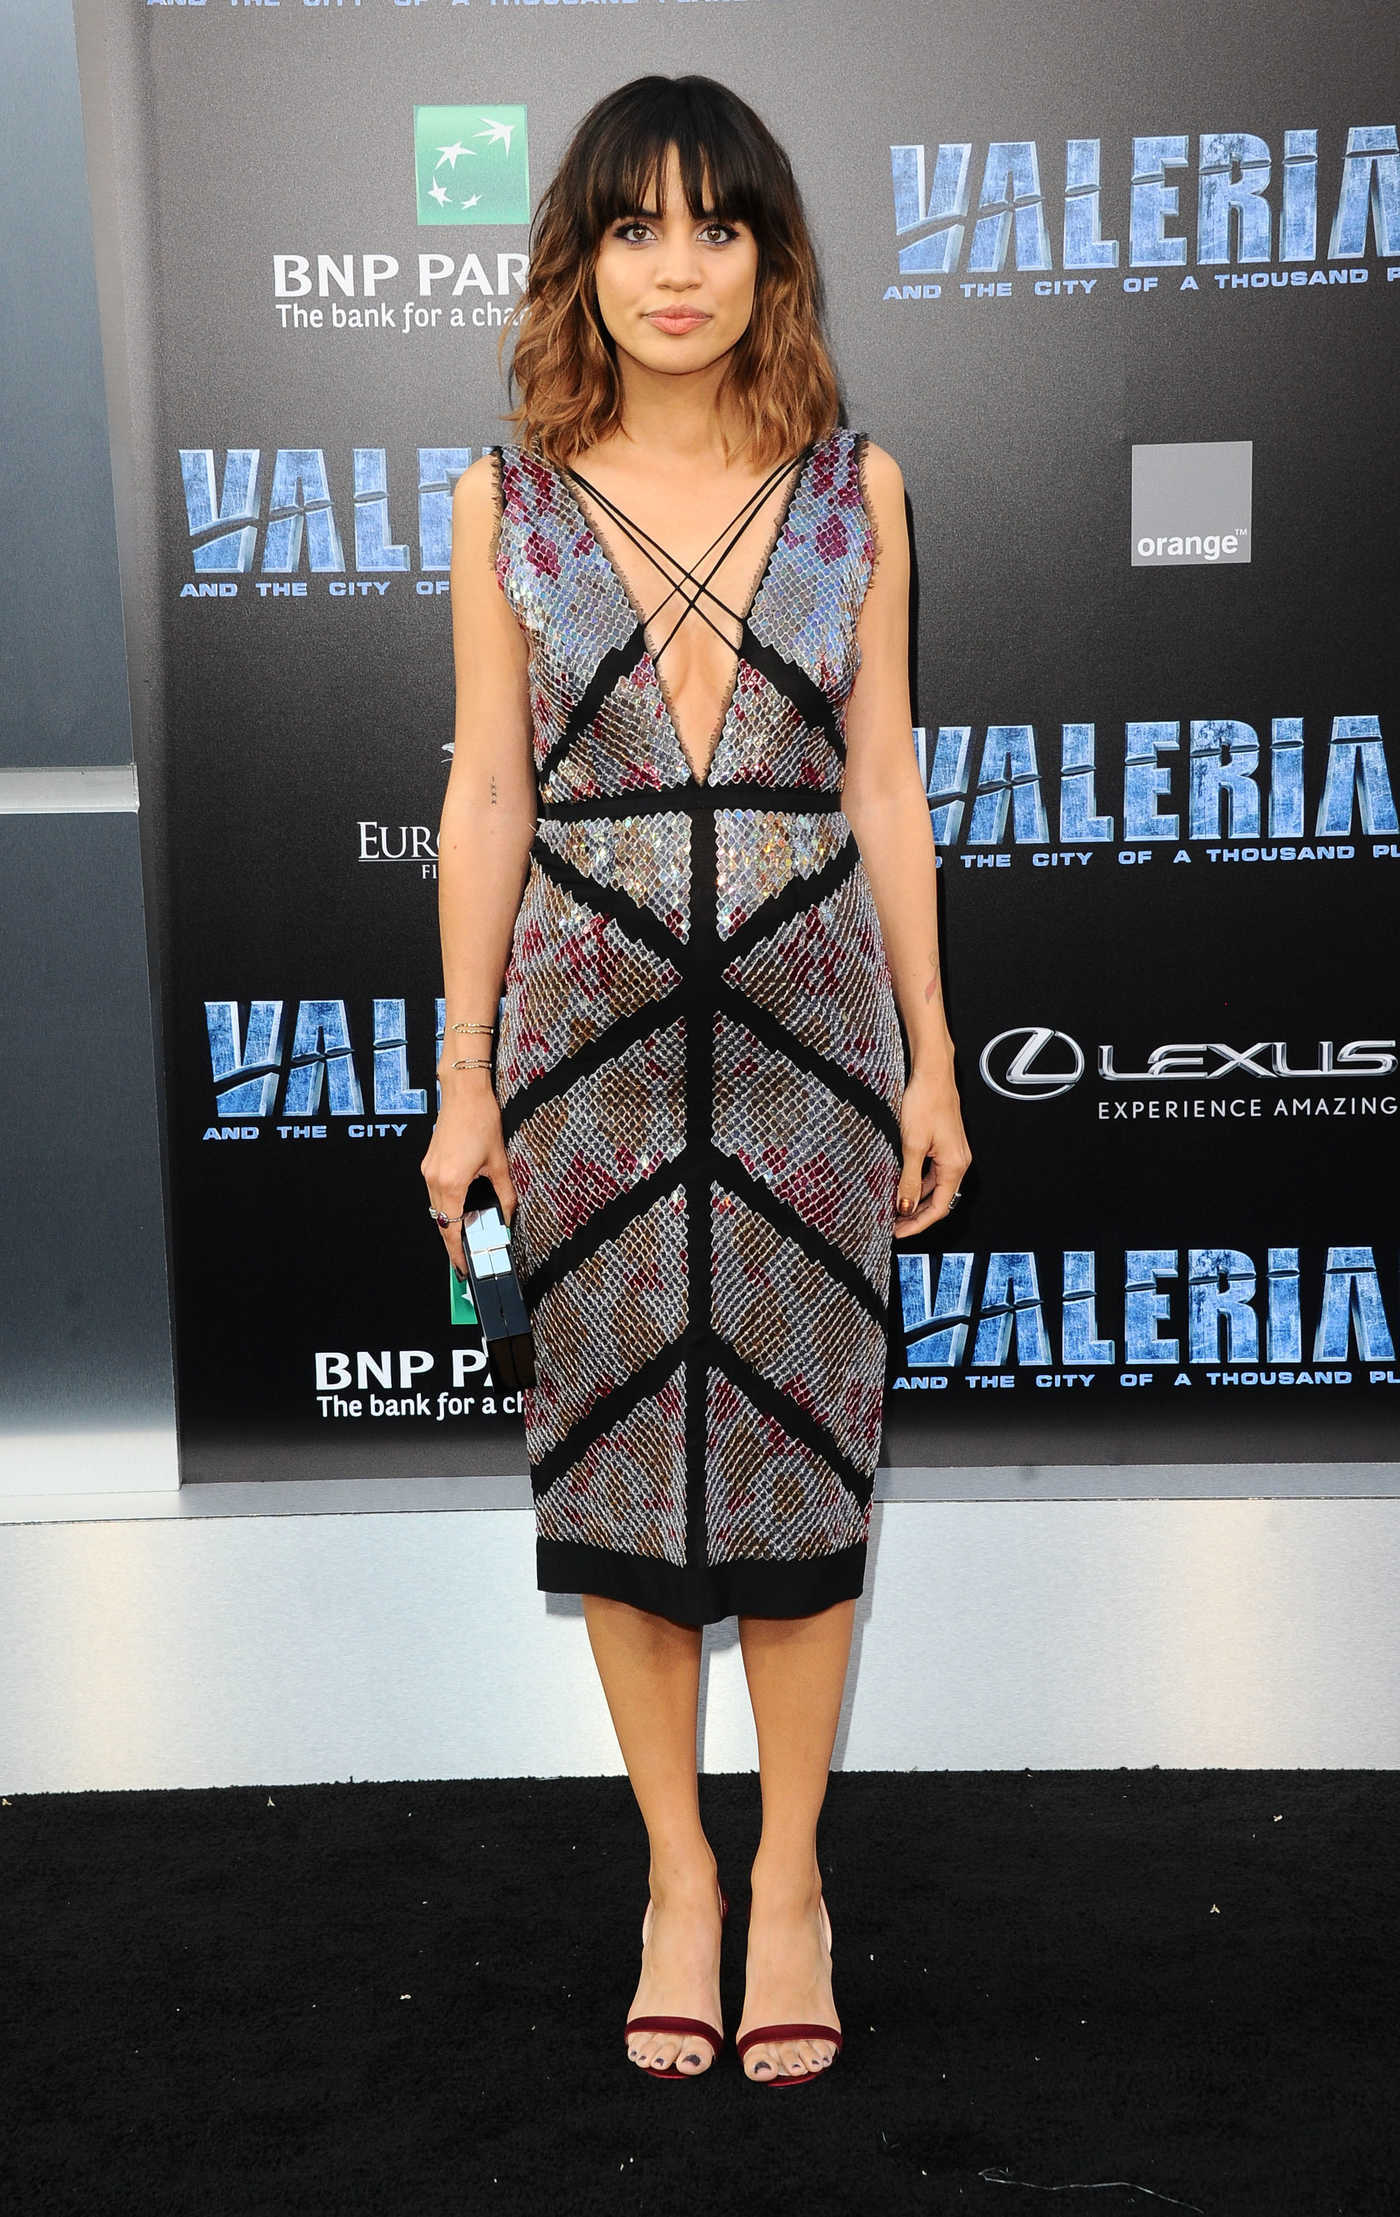 Natalie Morales at the Valerian and the City of a Thousand Planets Premiere in Hollywood 07/17/2017